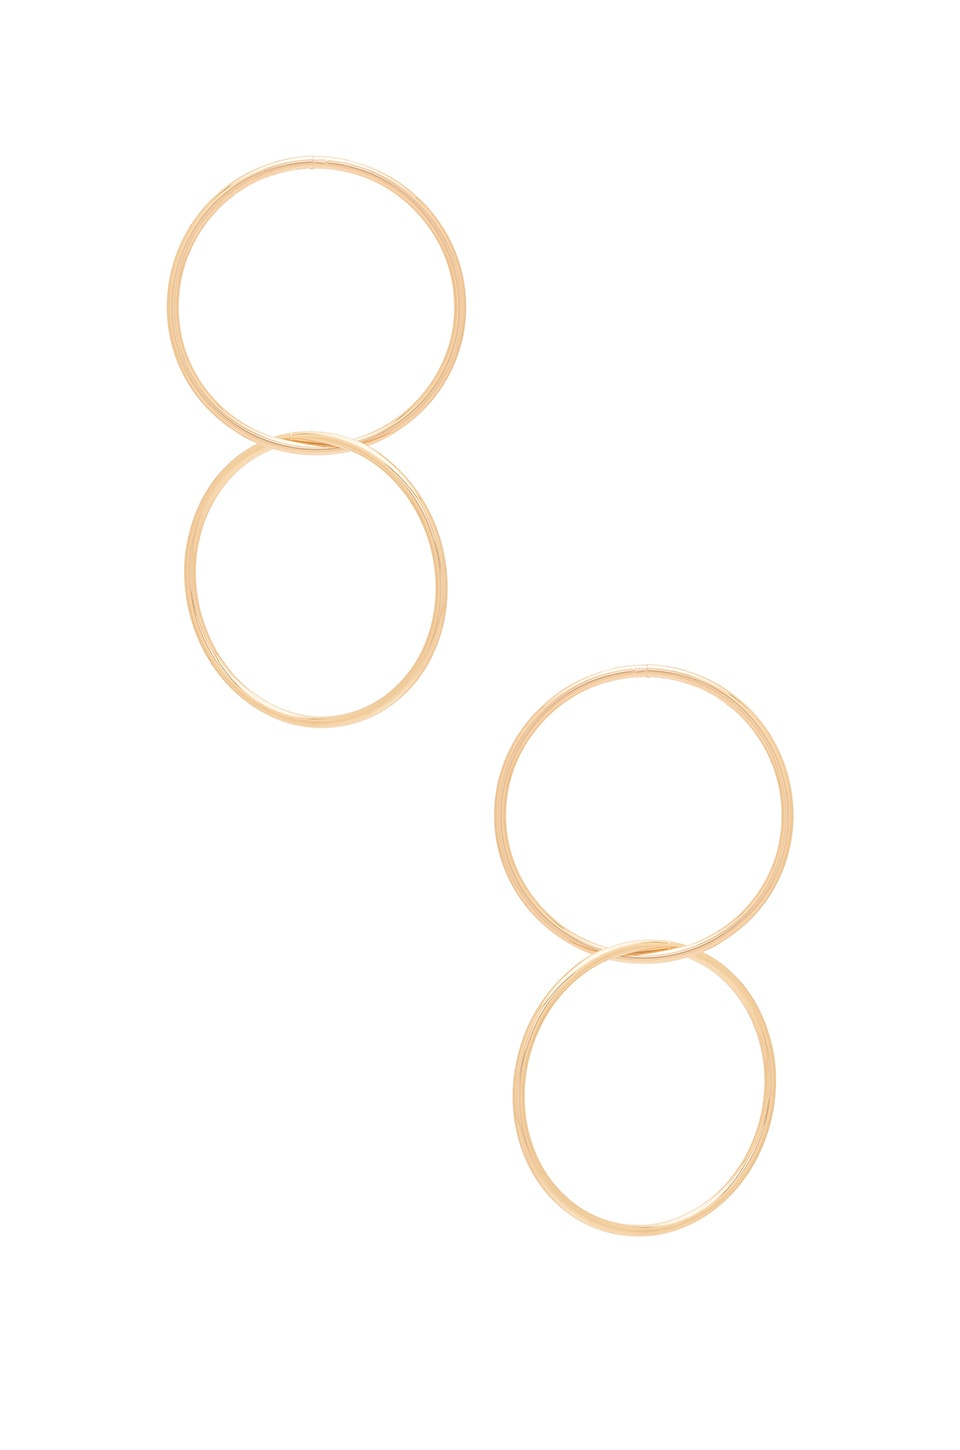 Ettika Joining Circle Earrings in Gold